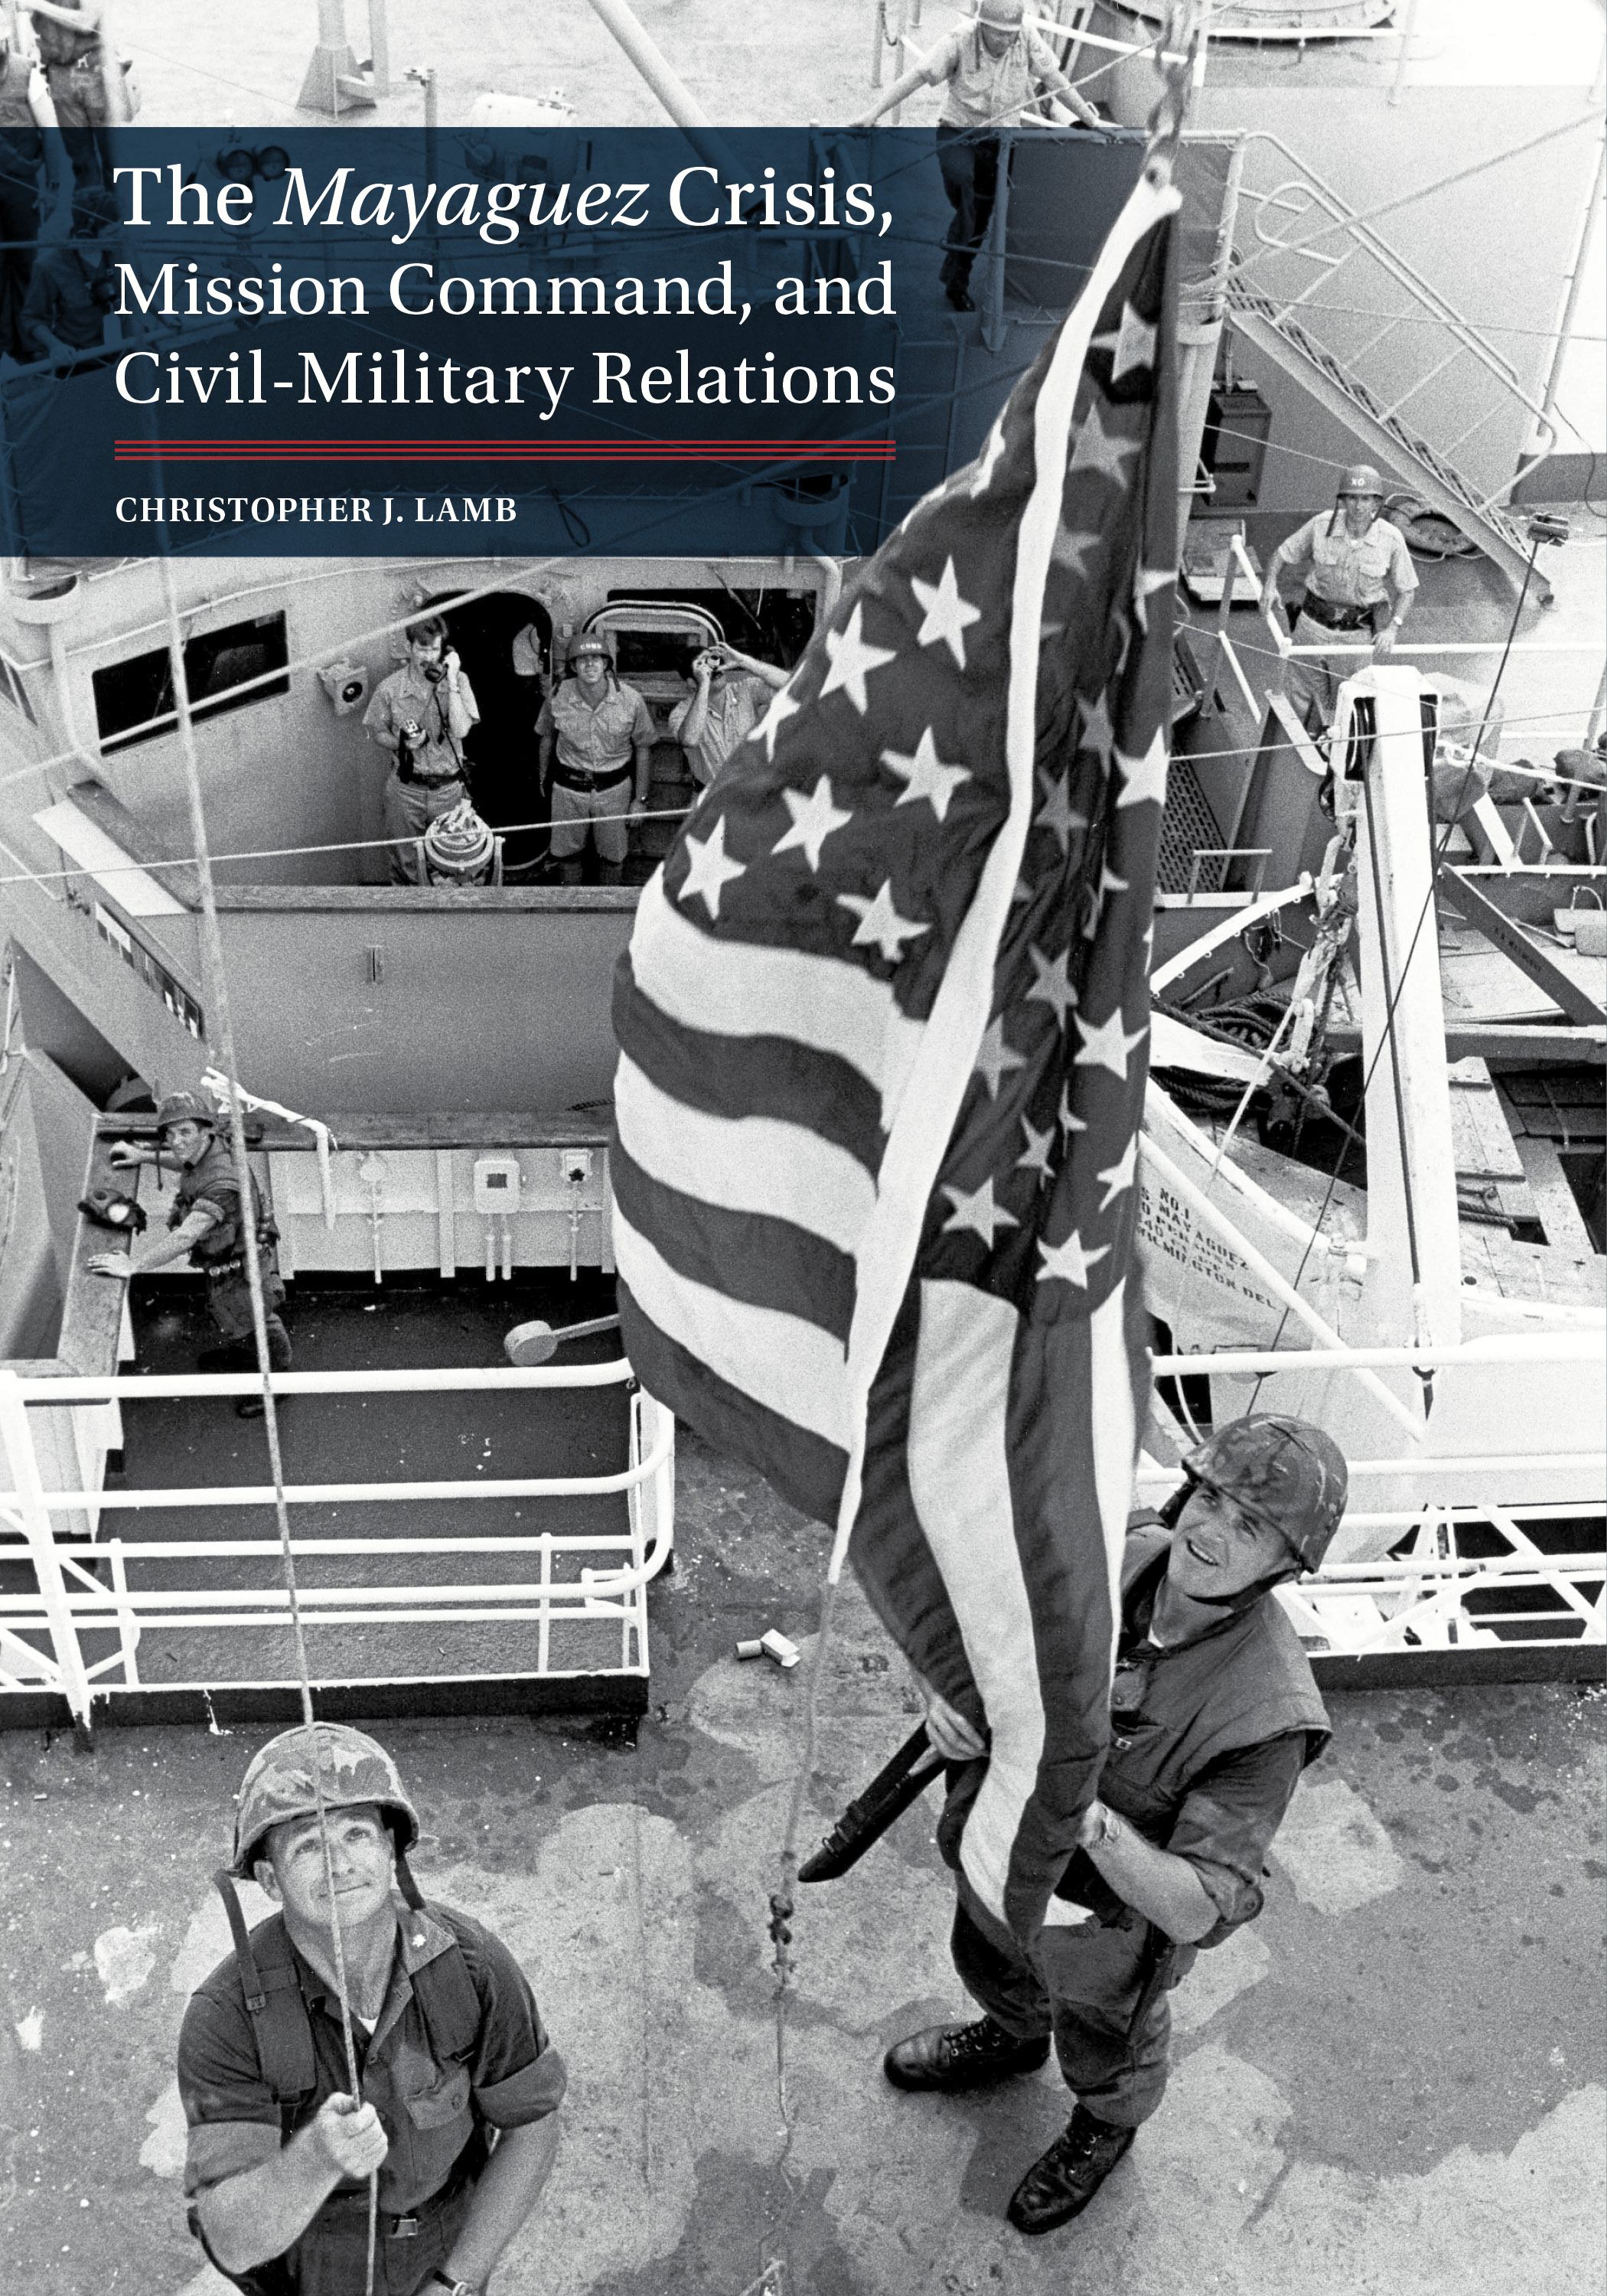 hight resolution of ray porter left and capt walt wood raise the american flag above the mayaguez on may 15 1975 naval history and heritage command vietnam collection